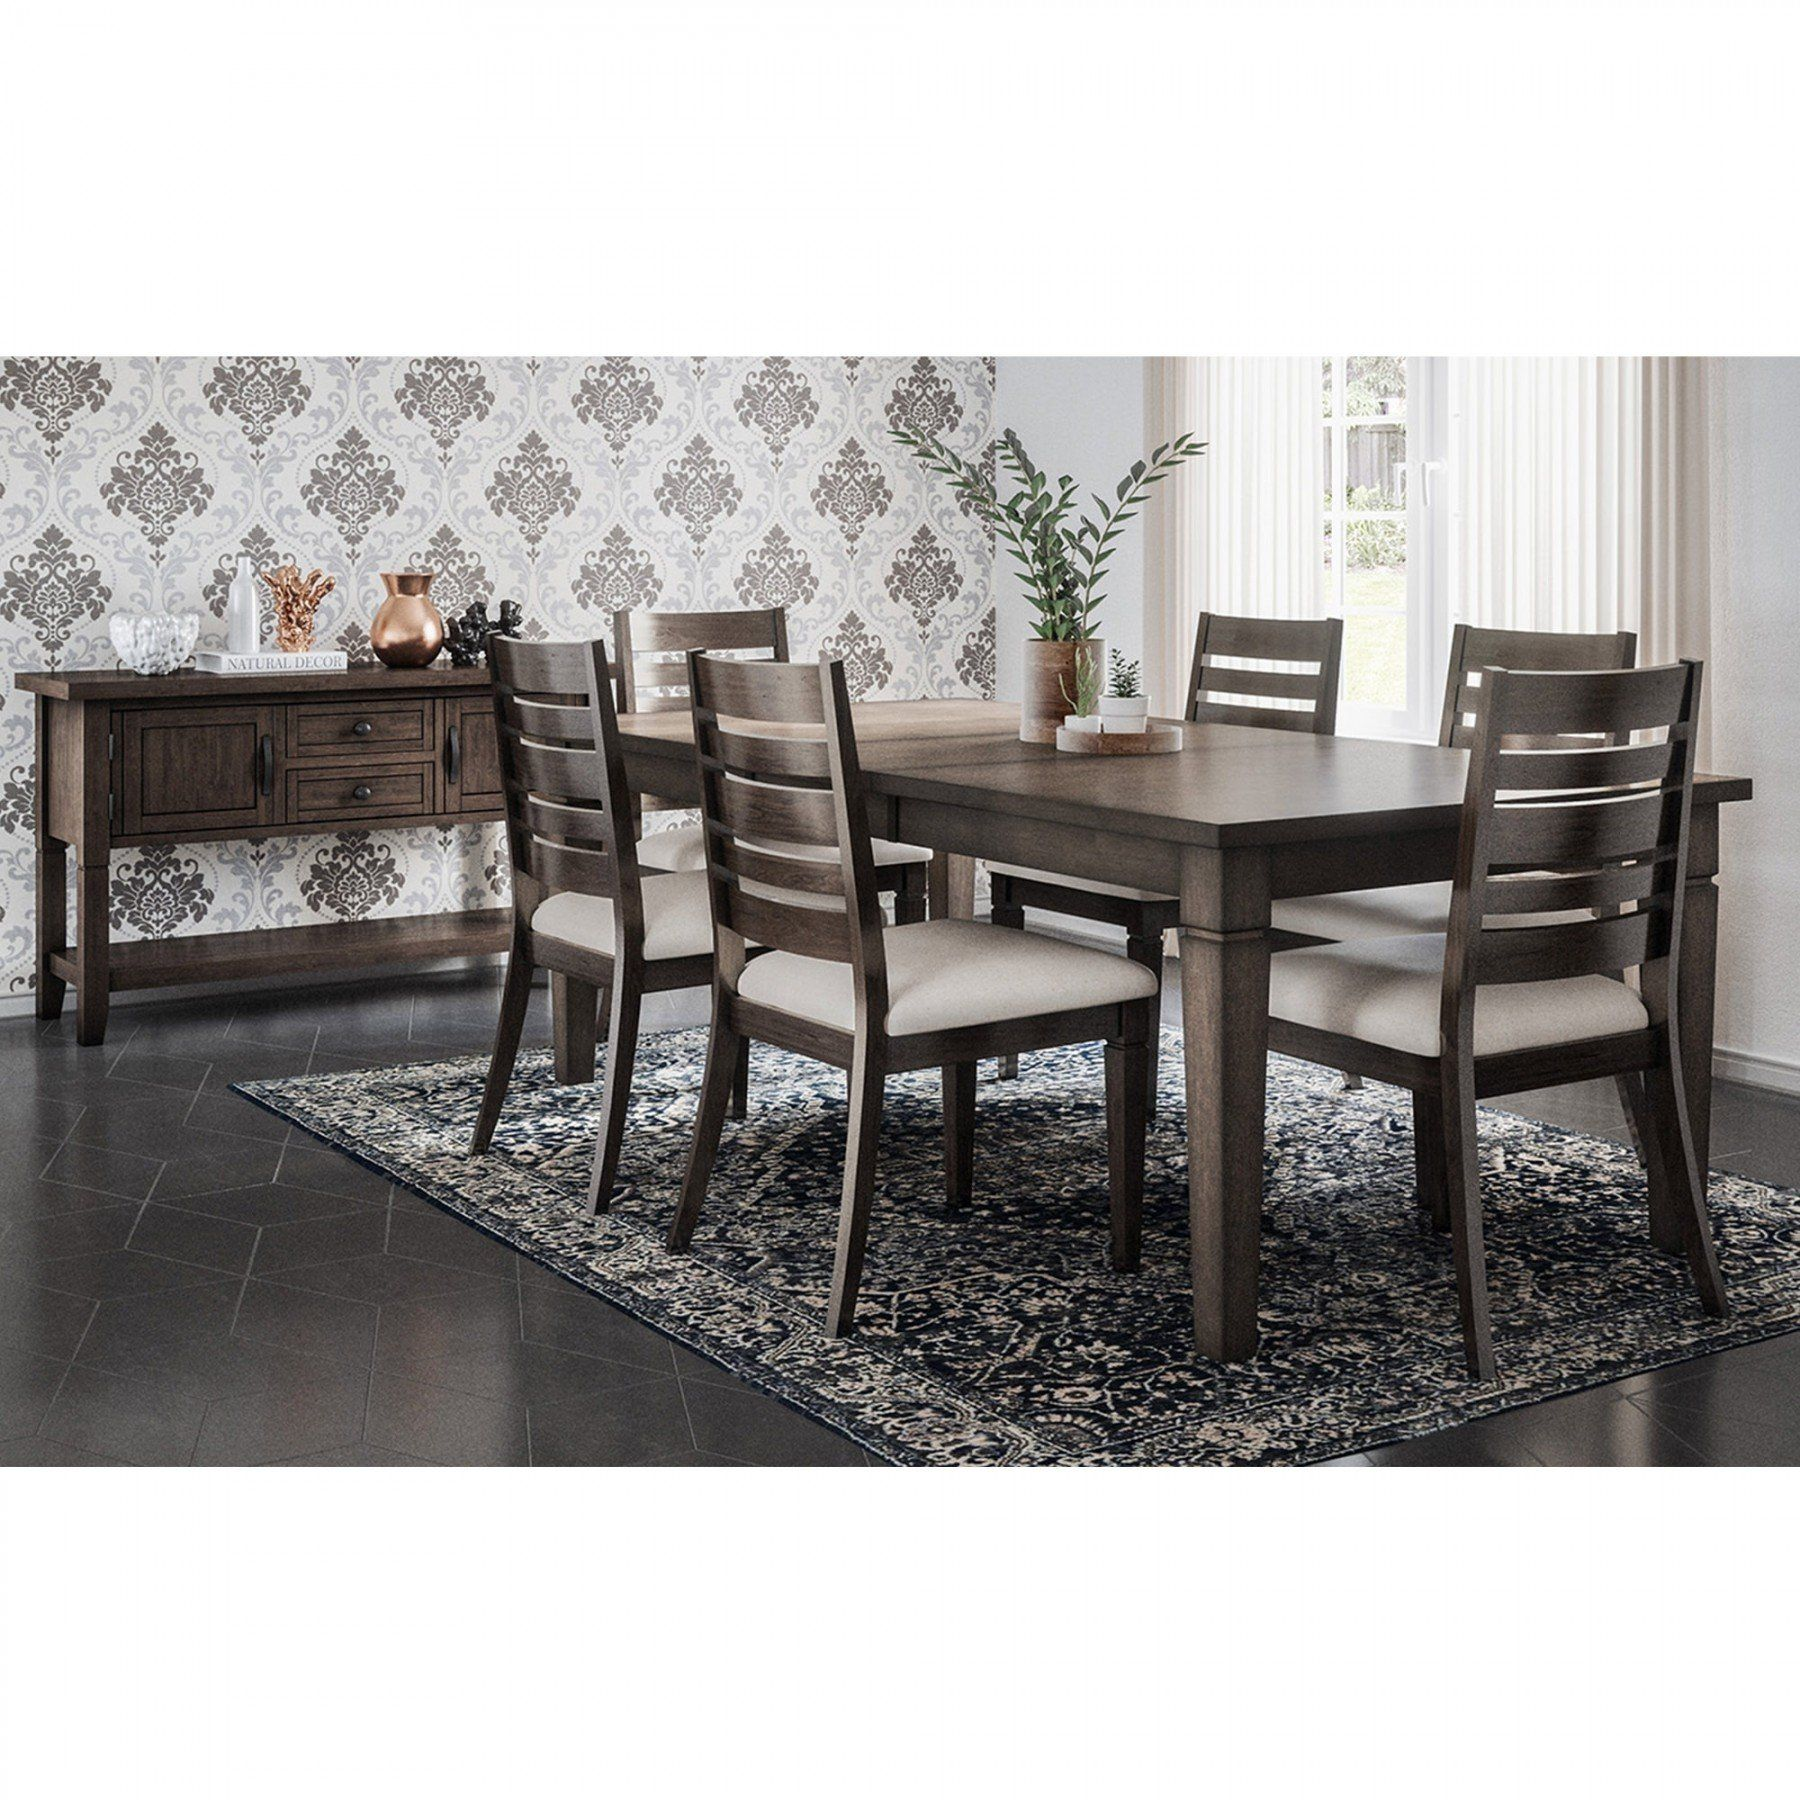 Lincoln Square 7 Piece Dining Set Rectangular Table With 6 Side Chairs Bernie Phyl S Furnit 7 Piece Dining Set Rectangular Table Rectangular Dining Table